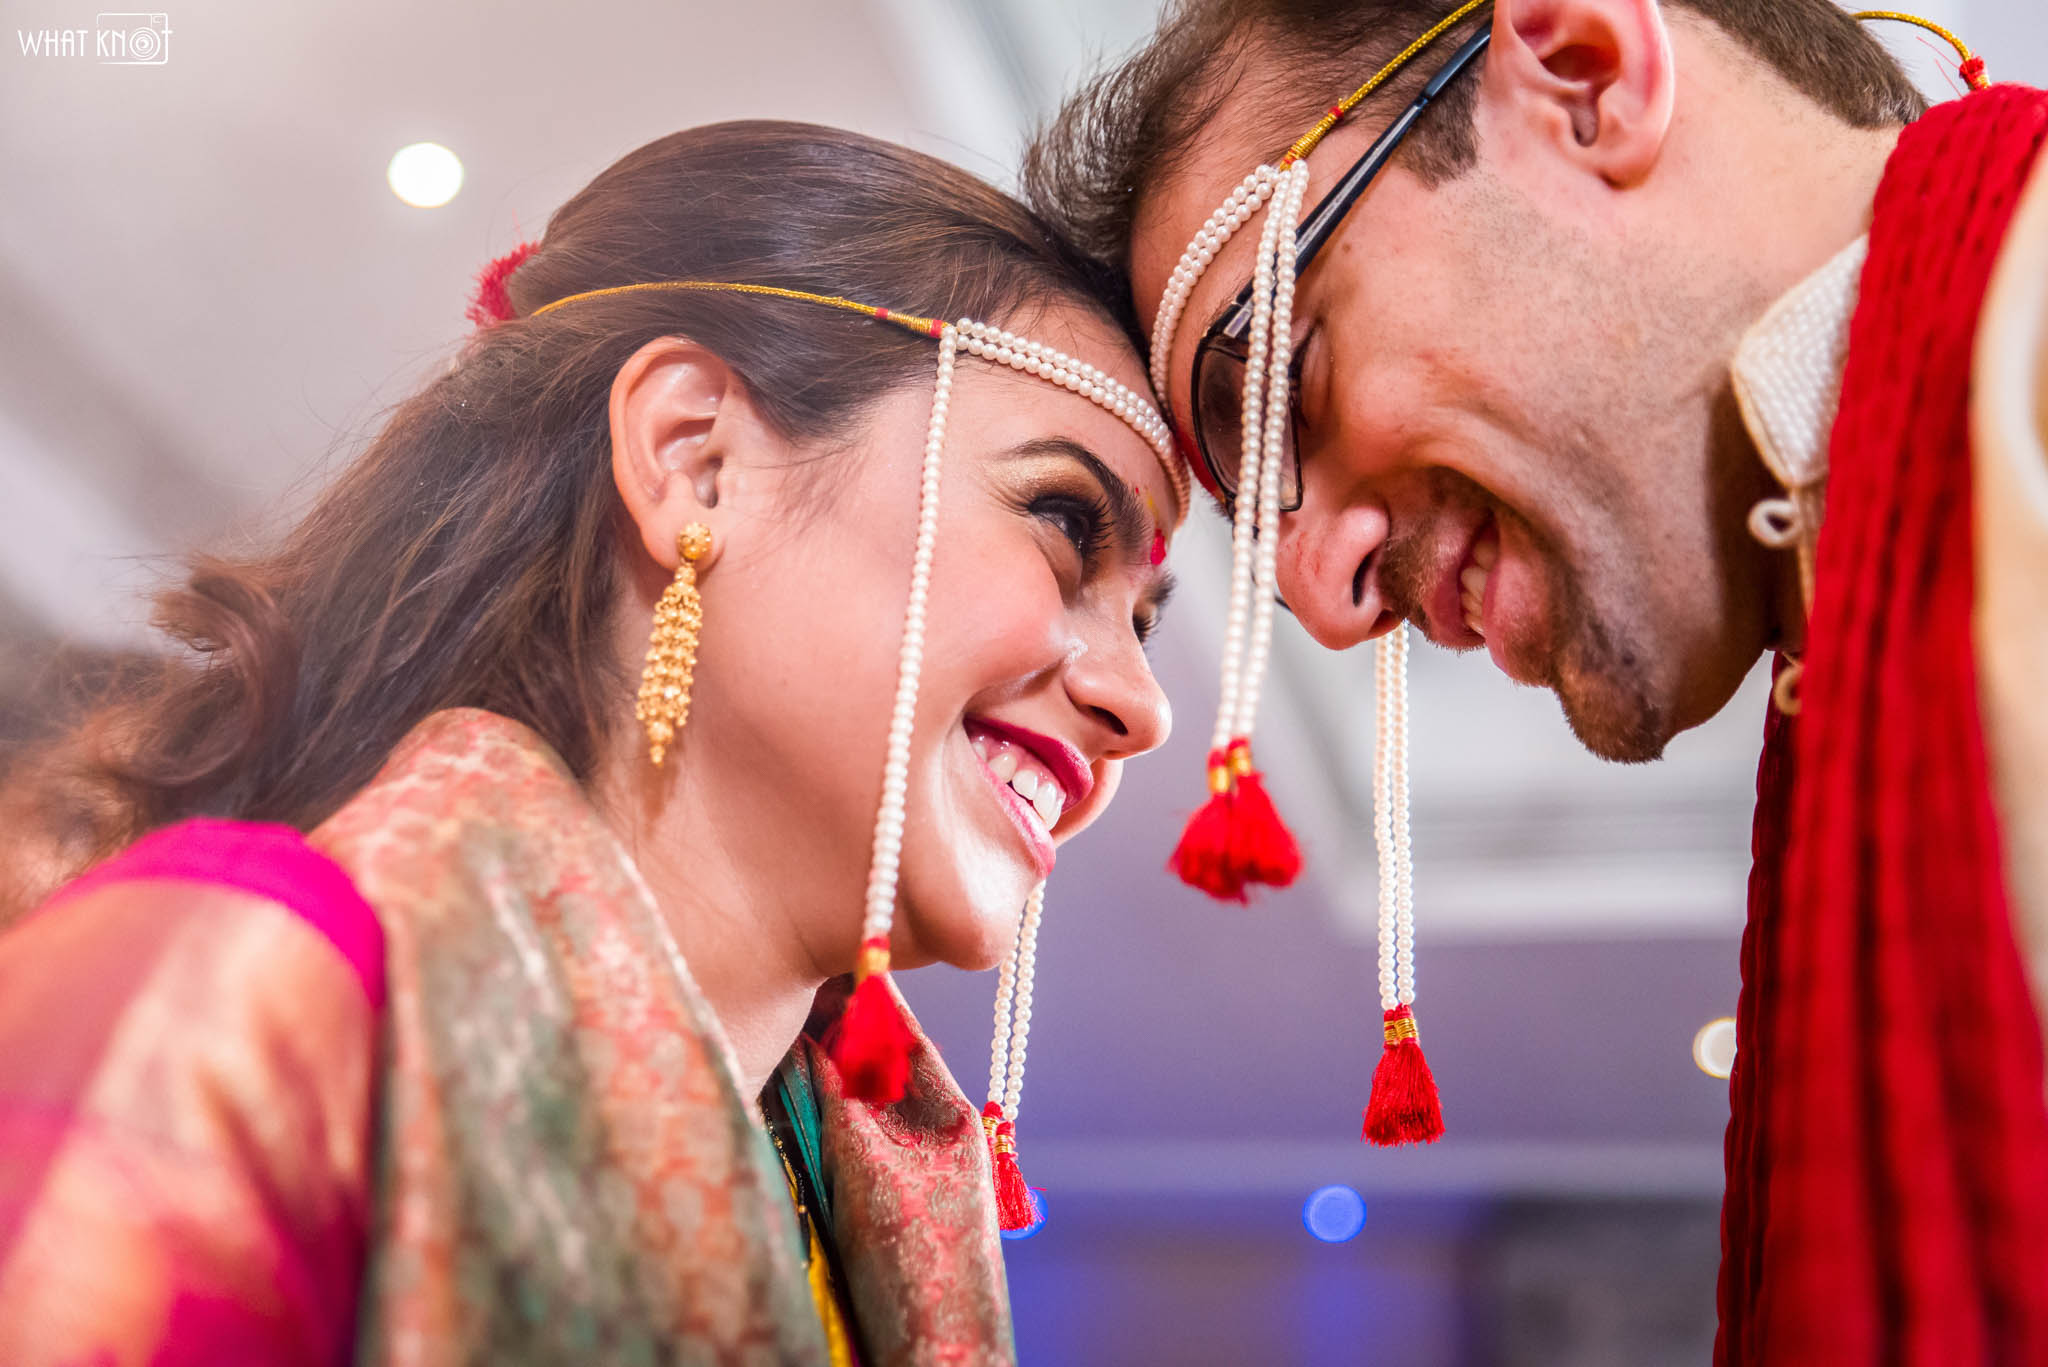 Candid-Wedding-Photography-WhatKnot-Marathi-134